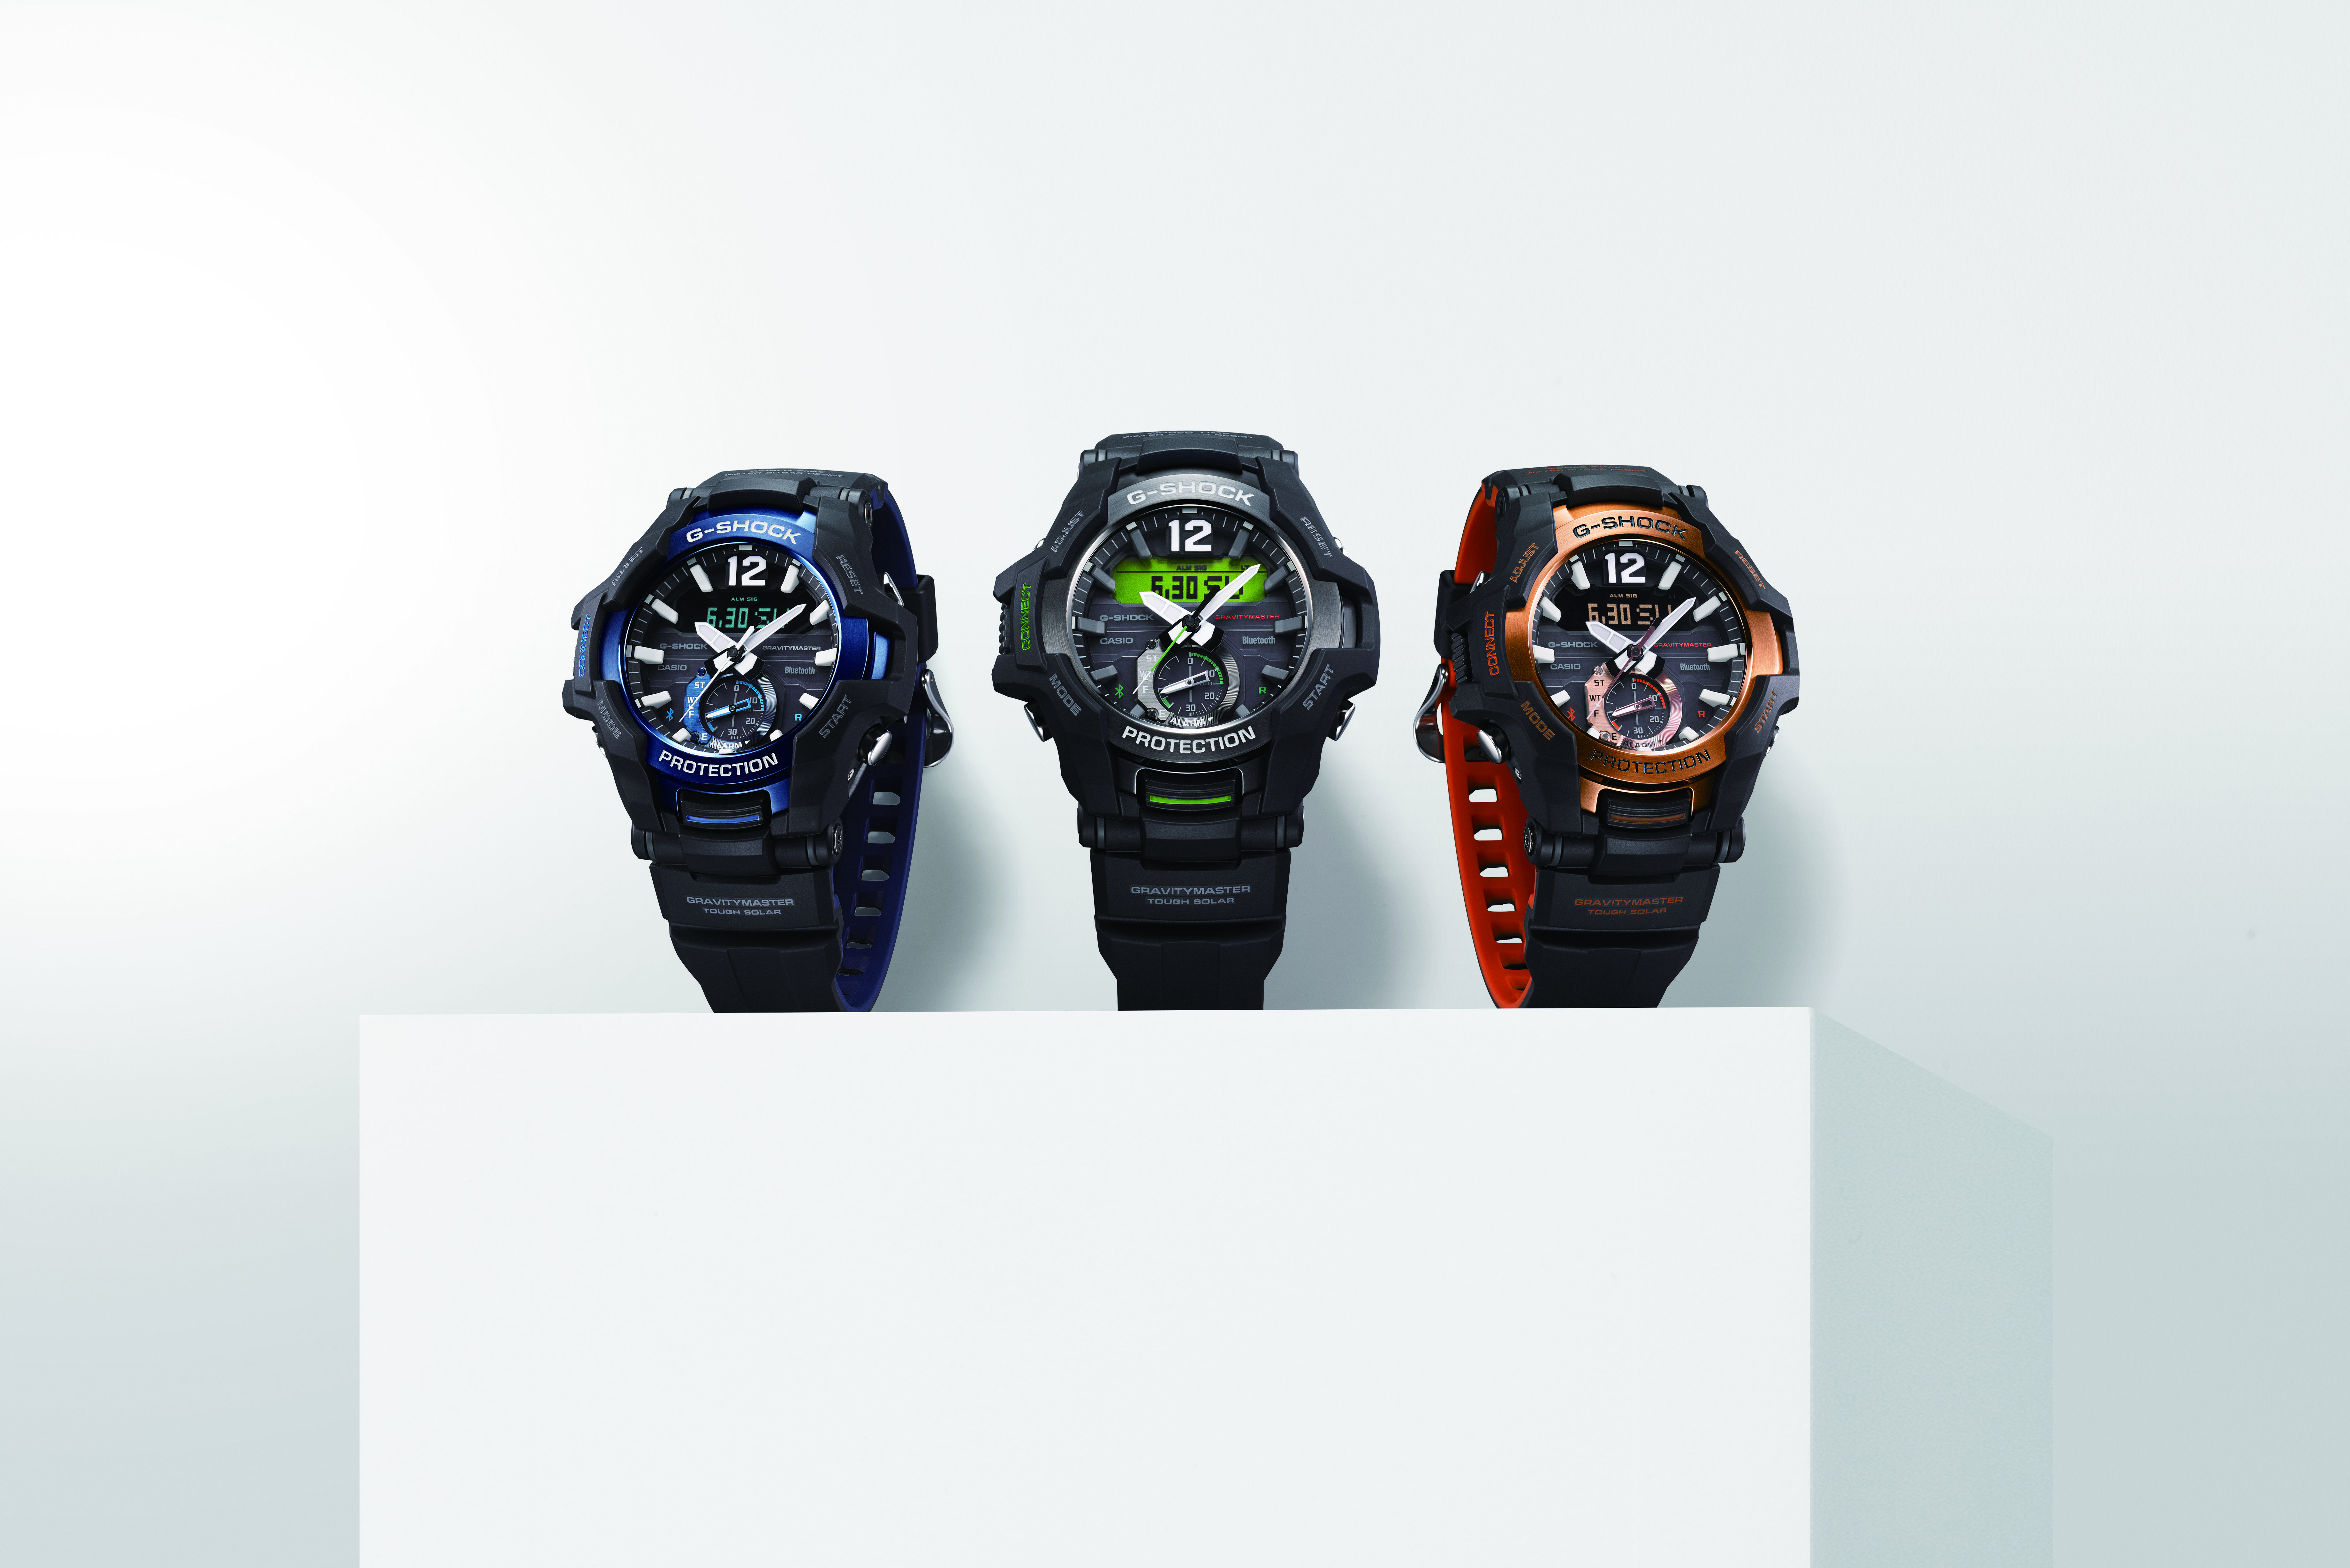 [Official] G-Shock GR-B100 — Latest Connected Gravitymaster at Baselworld 2018